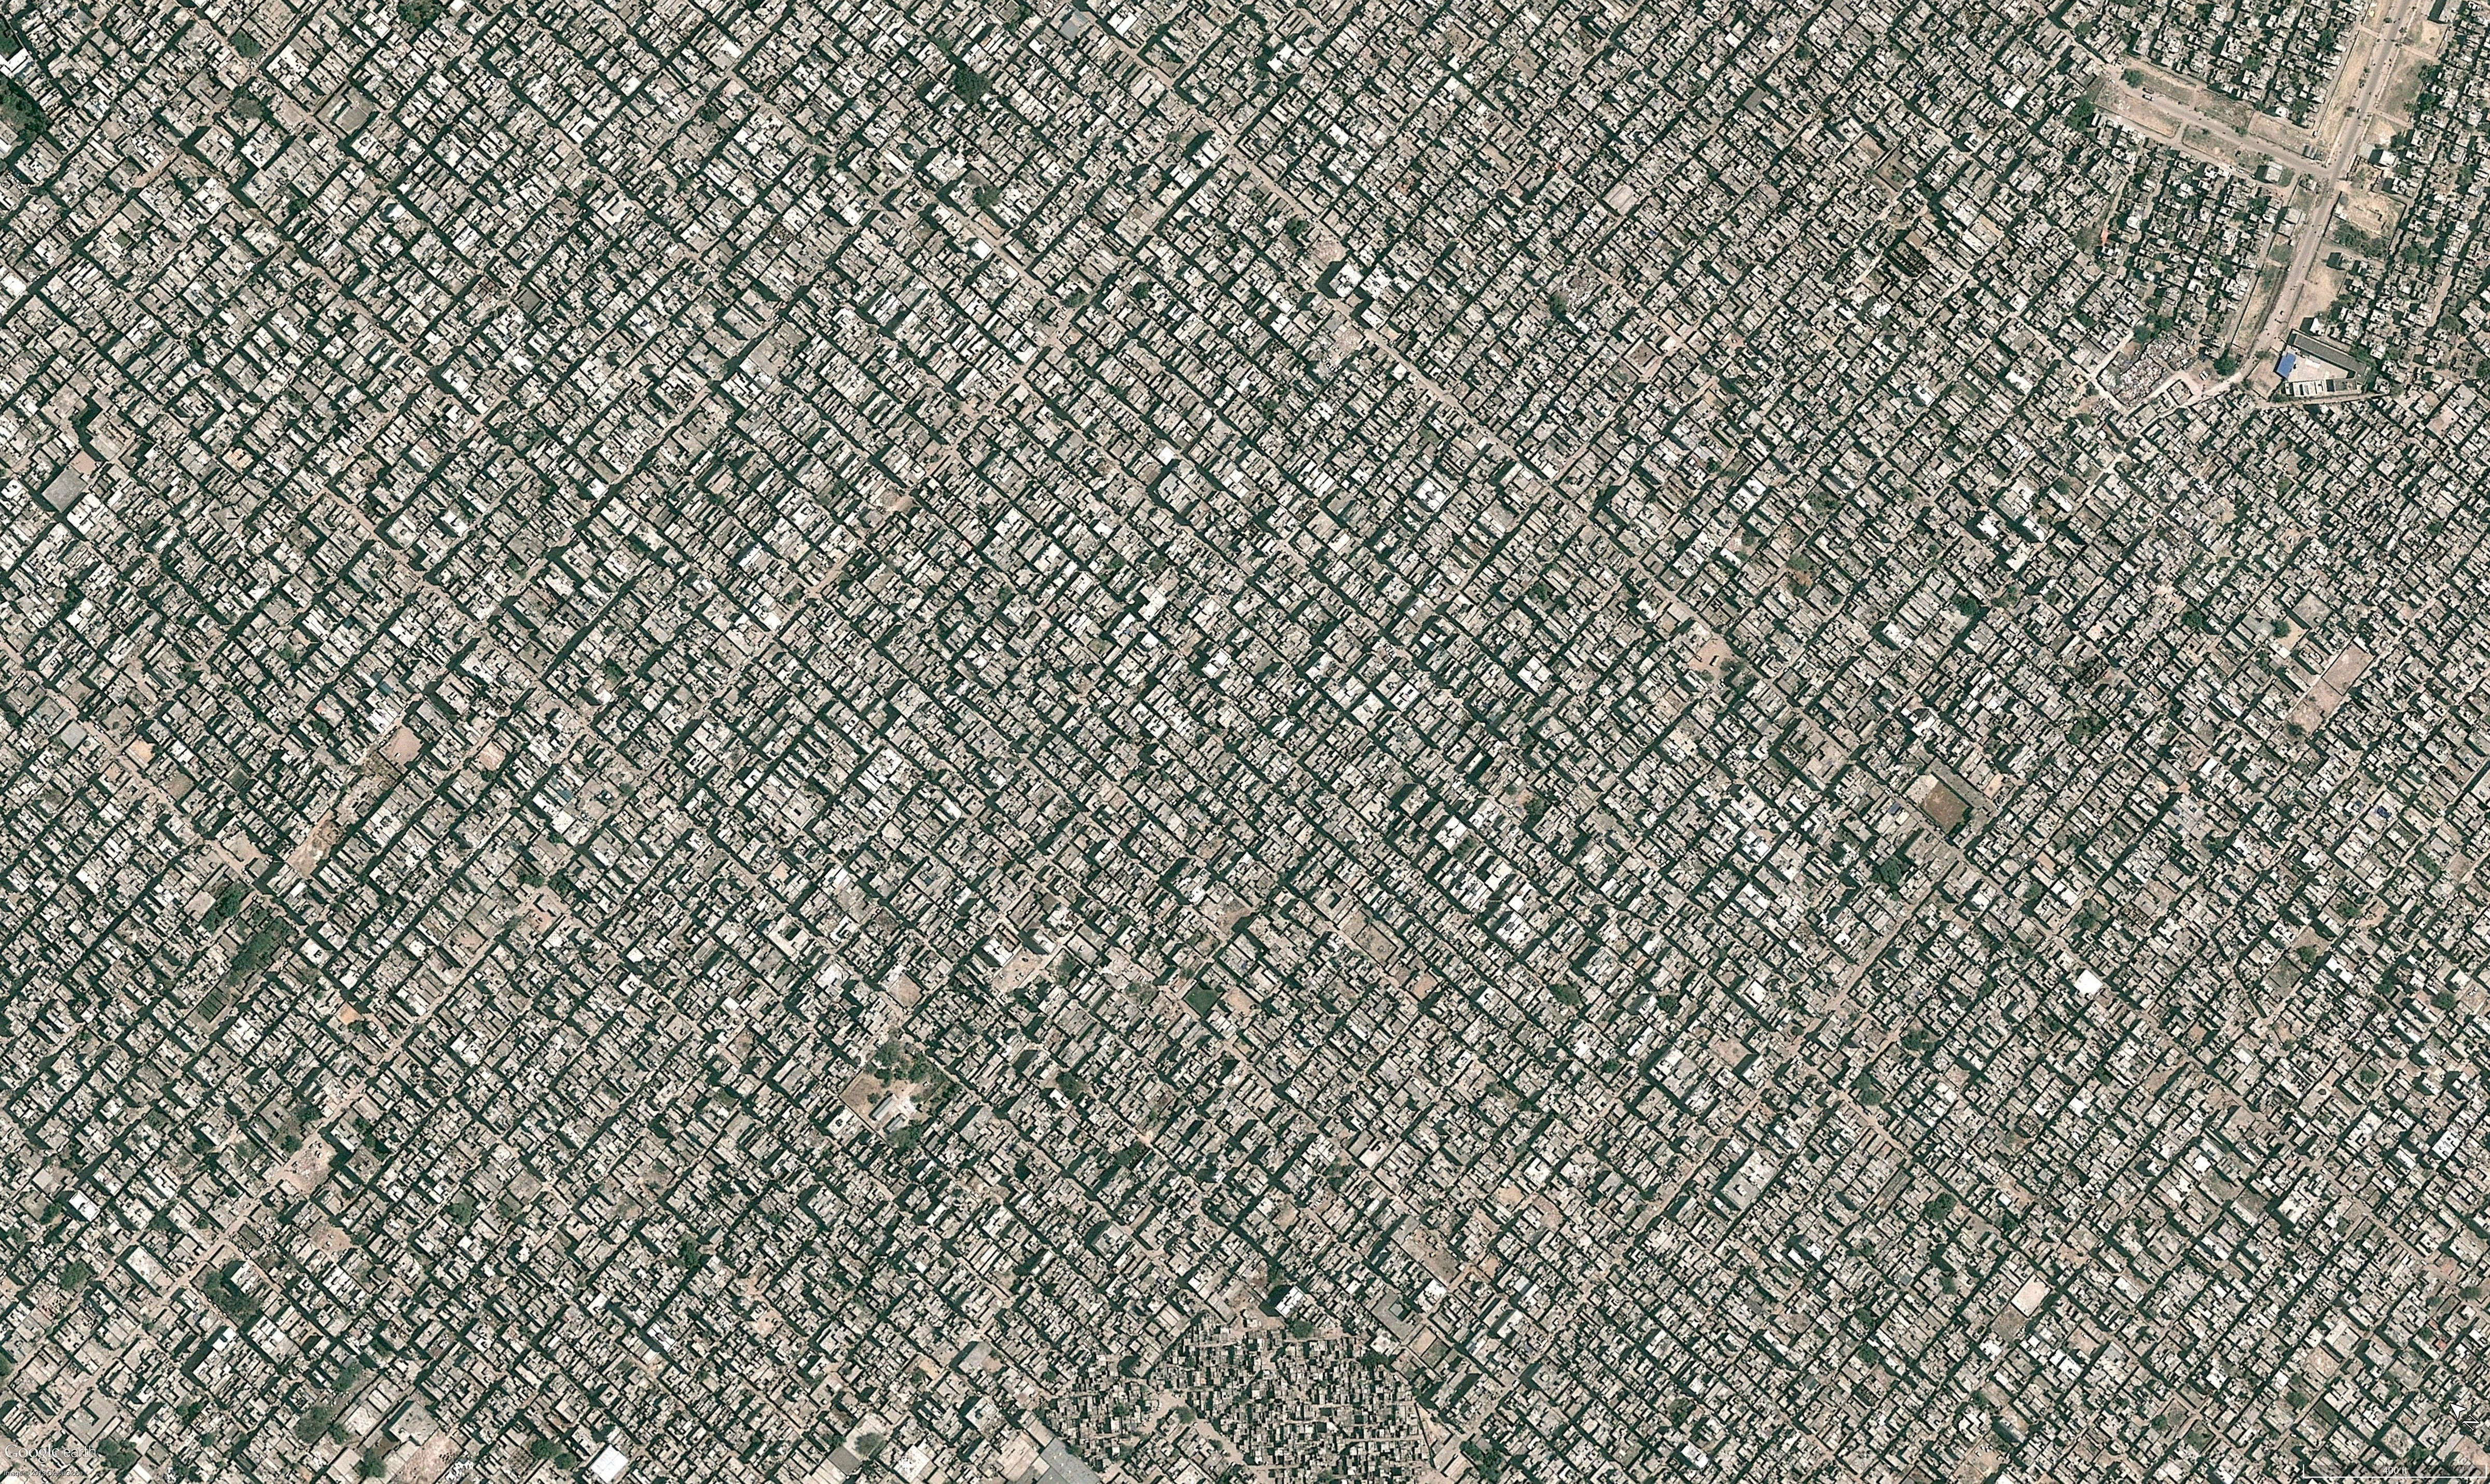 Aerial photography of New Delhi